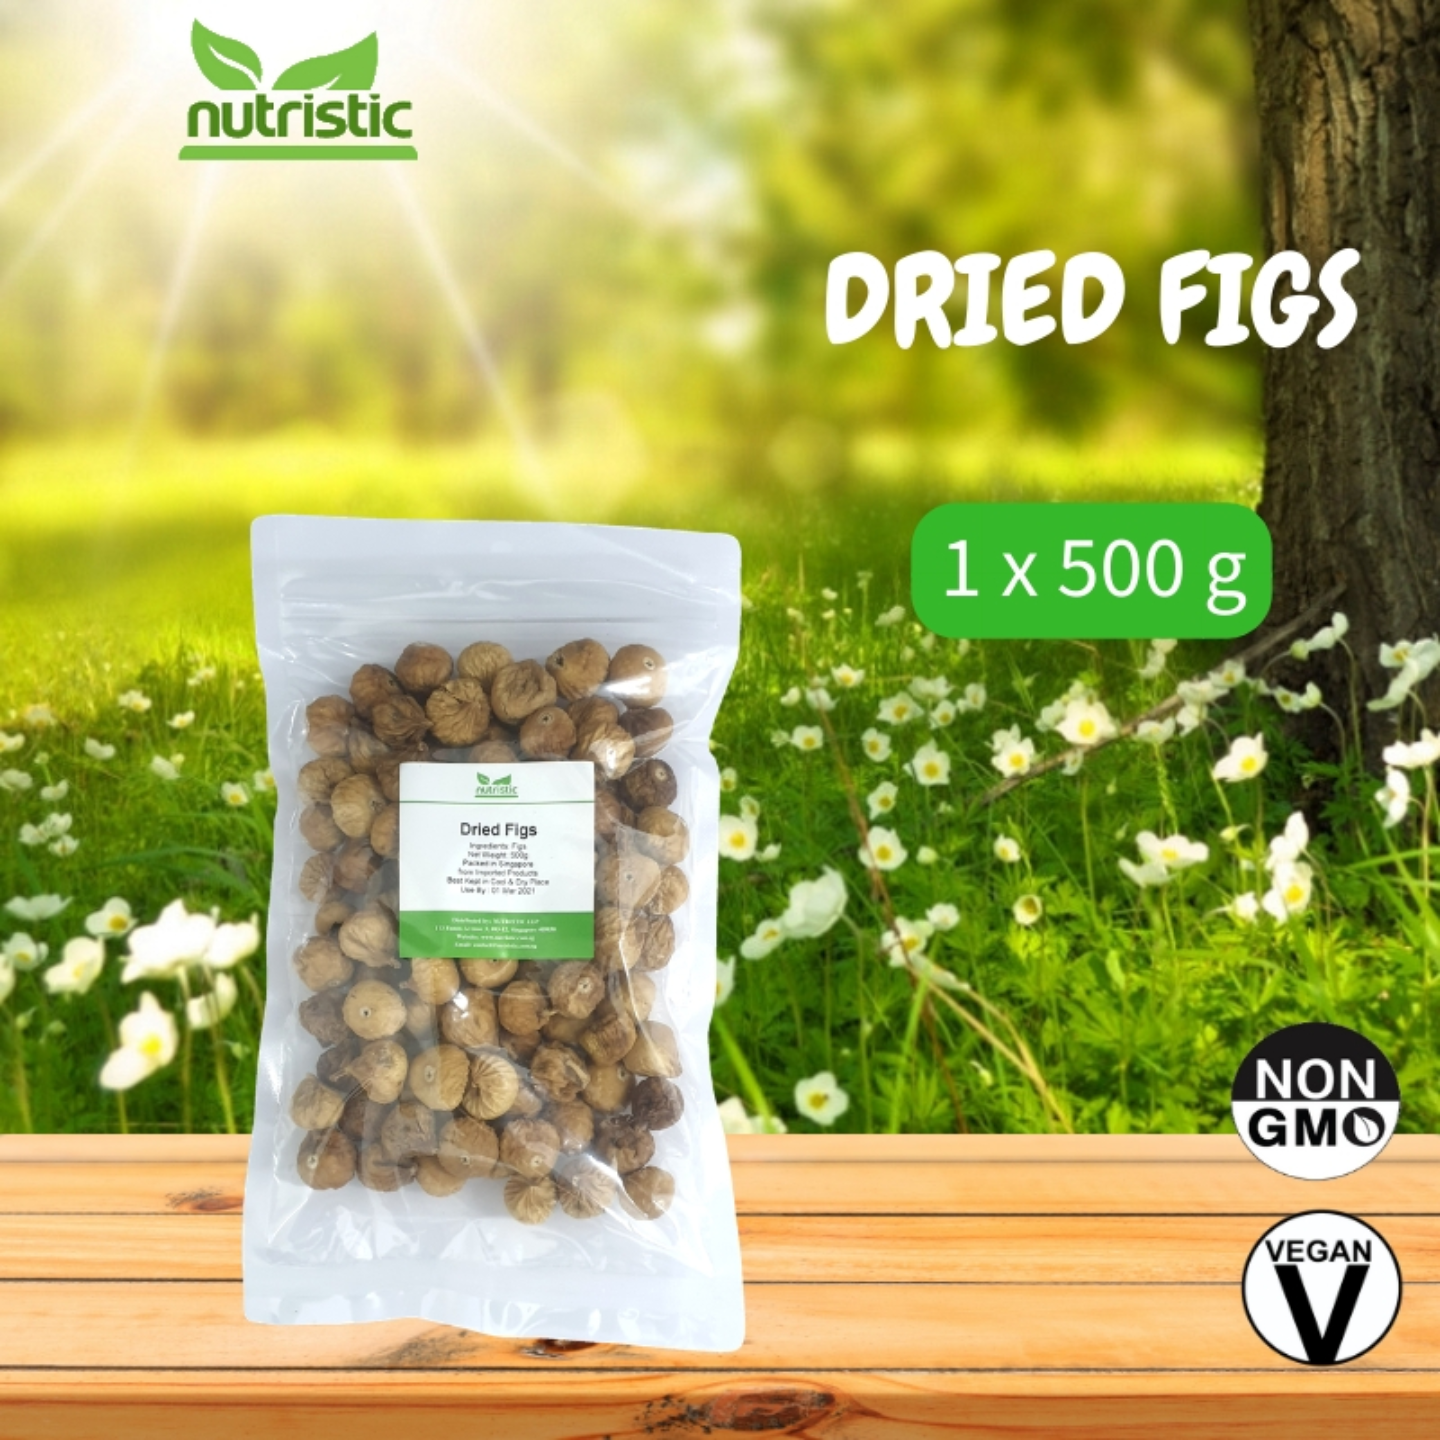 Dried Figs 500g - Value Pack